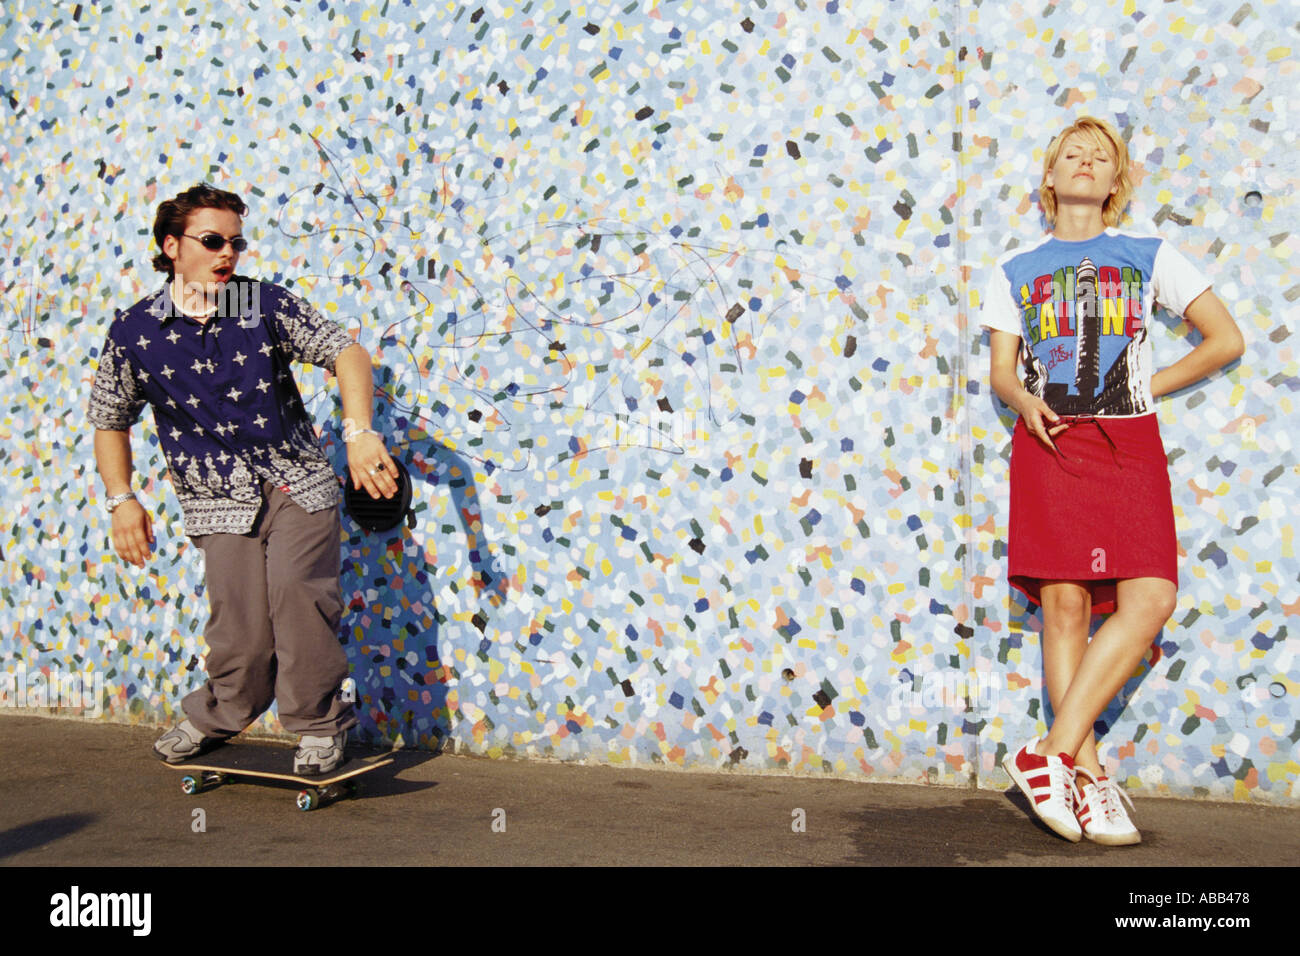 Two young adults near a patterned wall - Stock Image